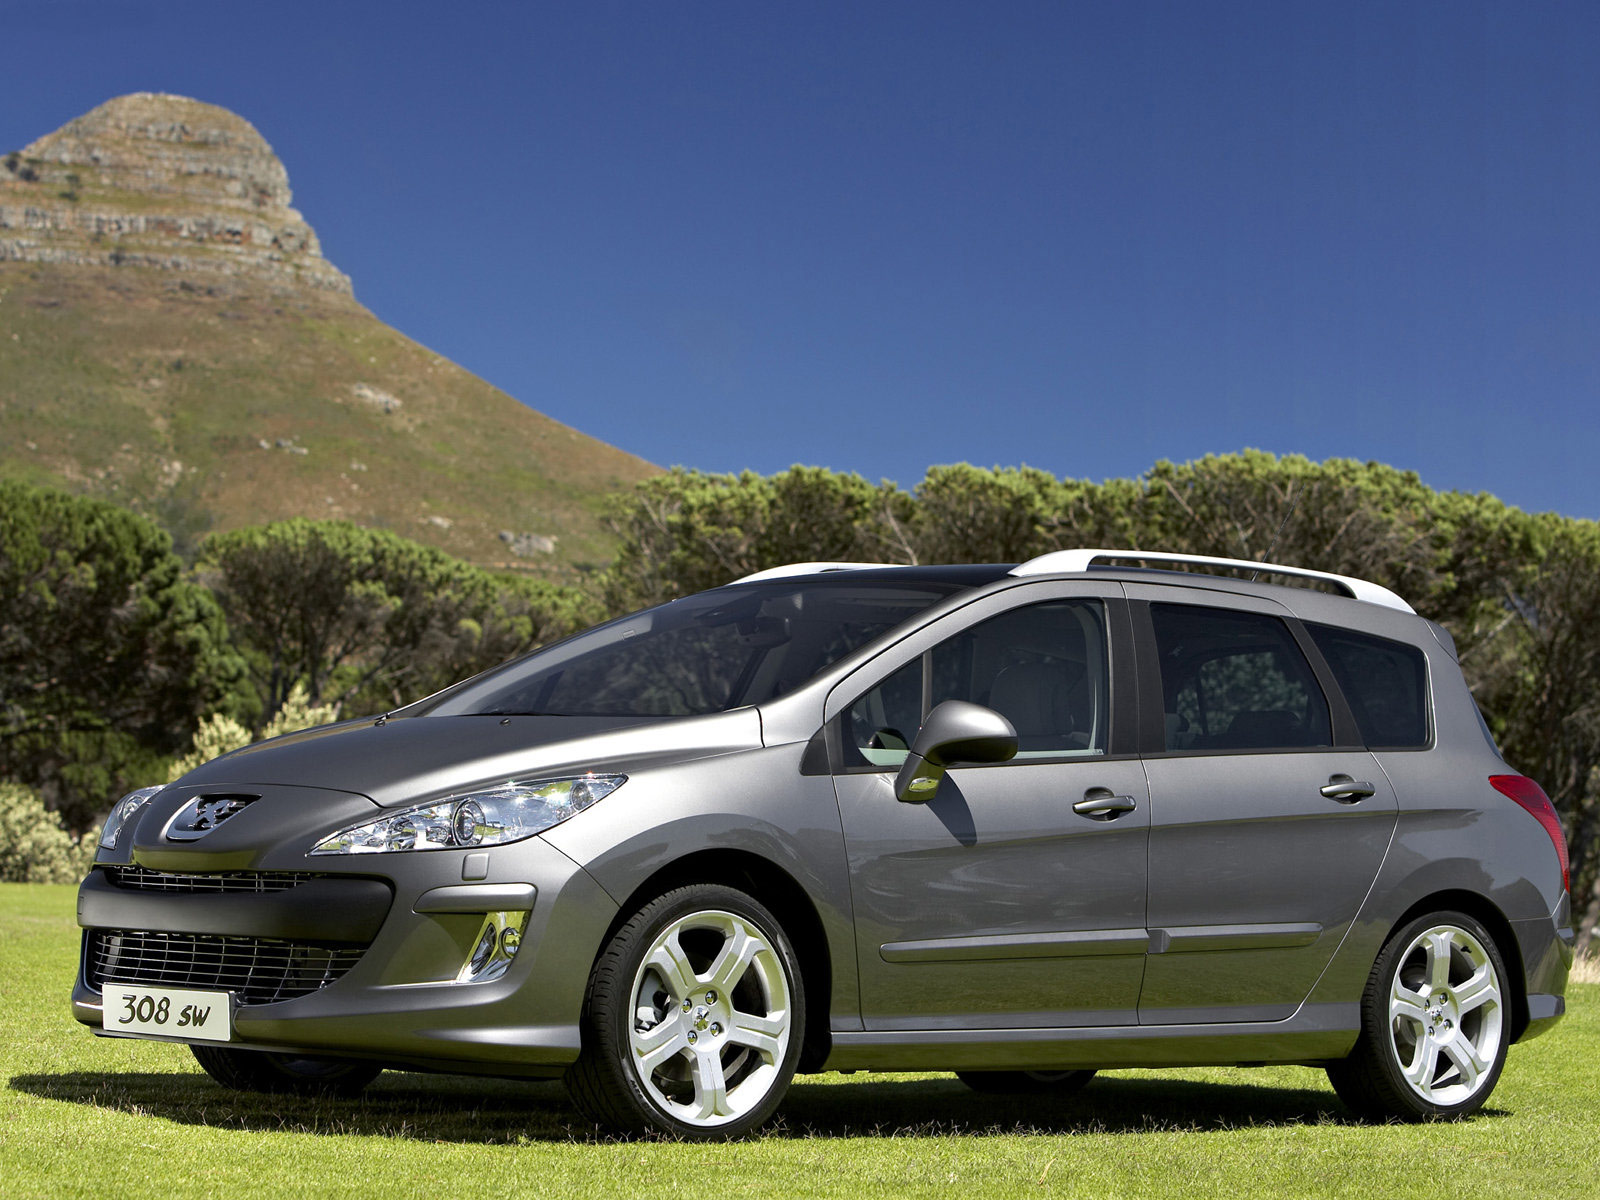 2009 PEUGEOT 308 SW car pictures, auto accident lawyers info